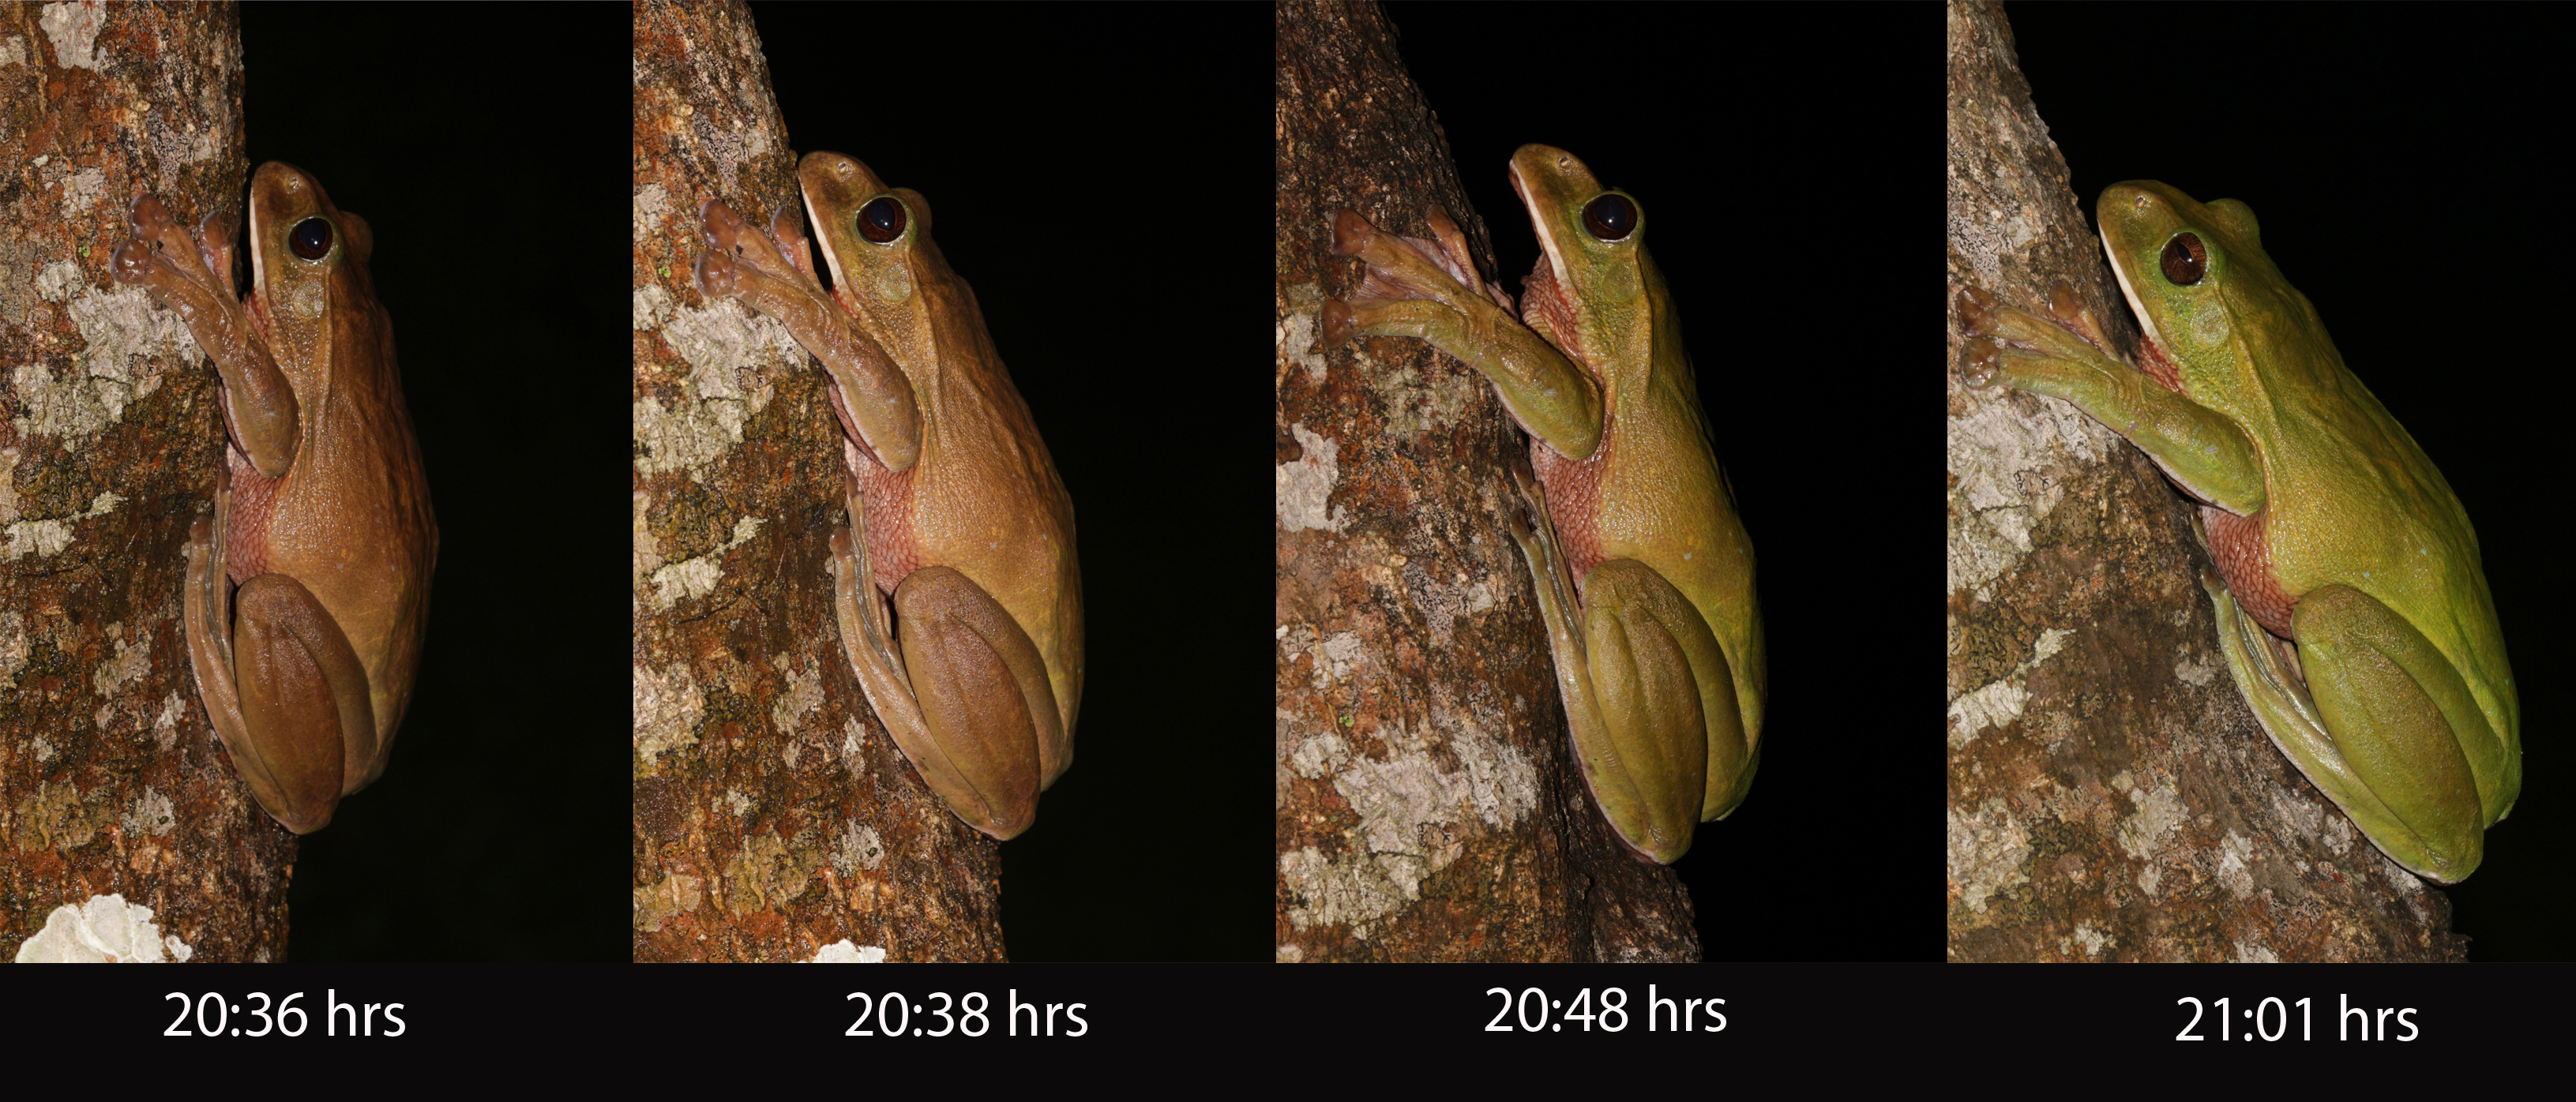 Researchers captured the sequence of color change from brown to green in Rhacophorus smaragdinus (now Zhangixalus smaragdinus). It took 25 minutes from the first photo in the left to the last one. This change was relatively slow compared to the initial colour change from green to brown upon handling. Photo courtesy C.K. et al. (2019).